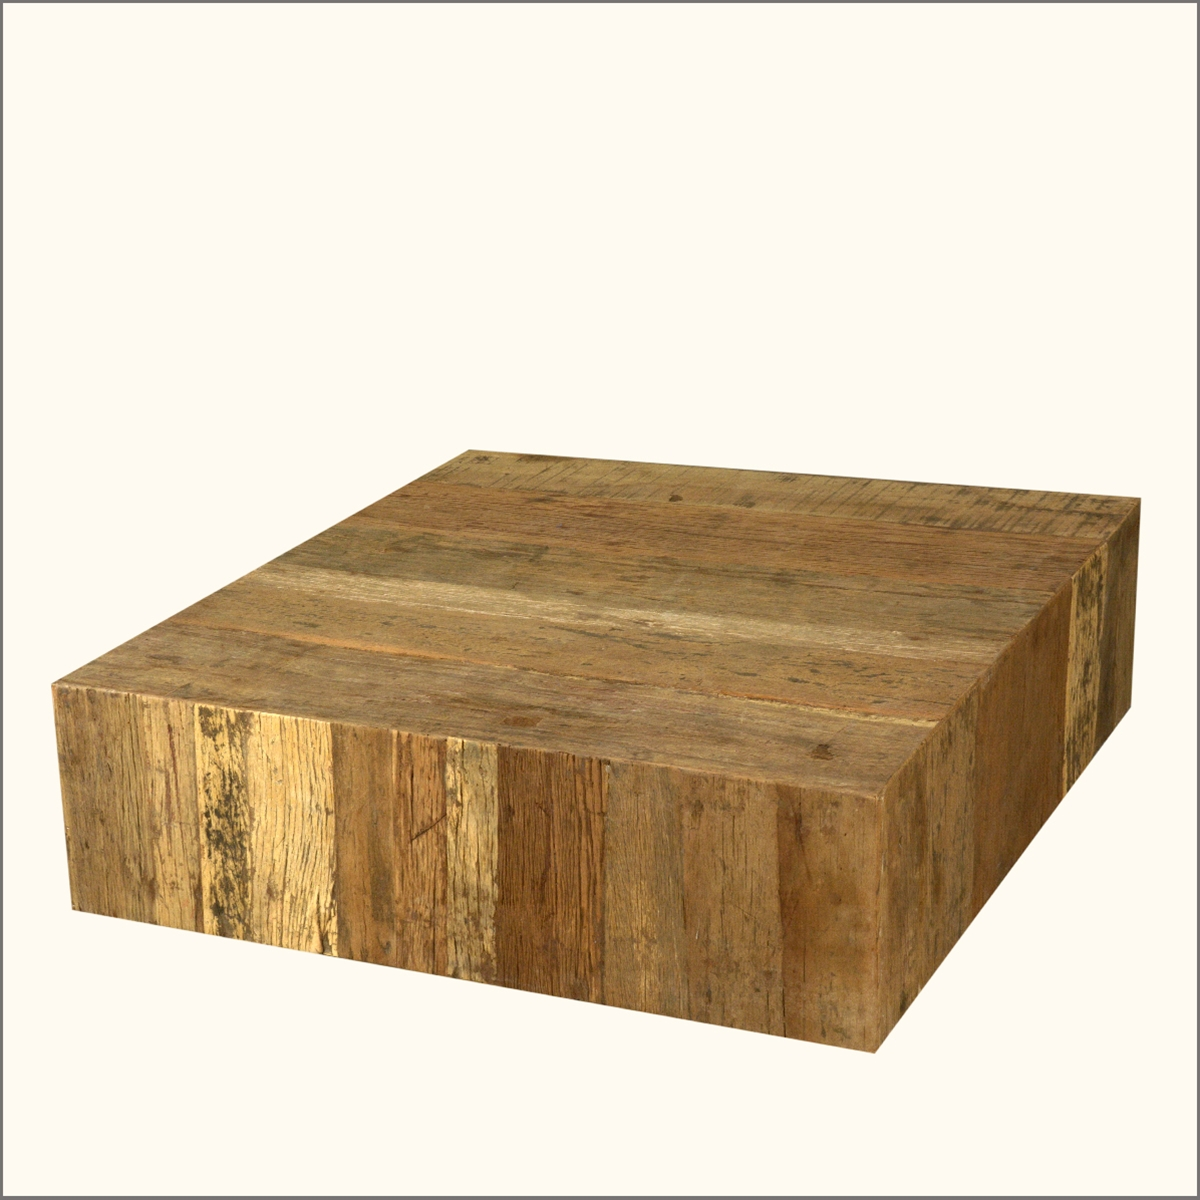 Reclaimed Wood Coffee Table Square: Rustic Railroad Ties Reclaimed Wood Square Sofa Cocktail